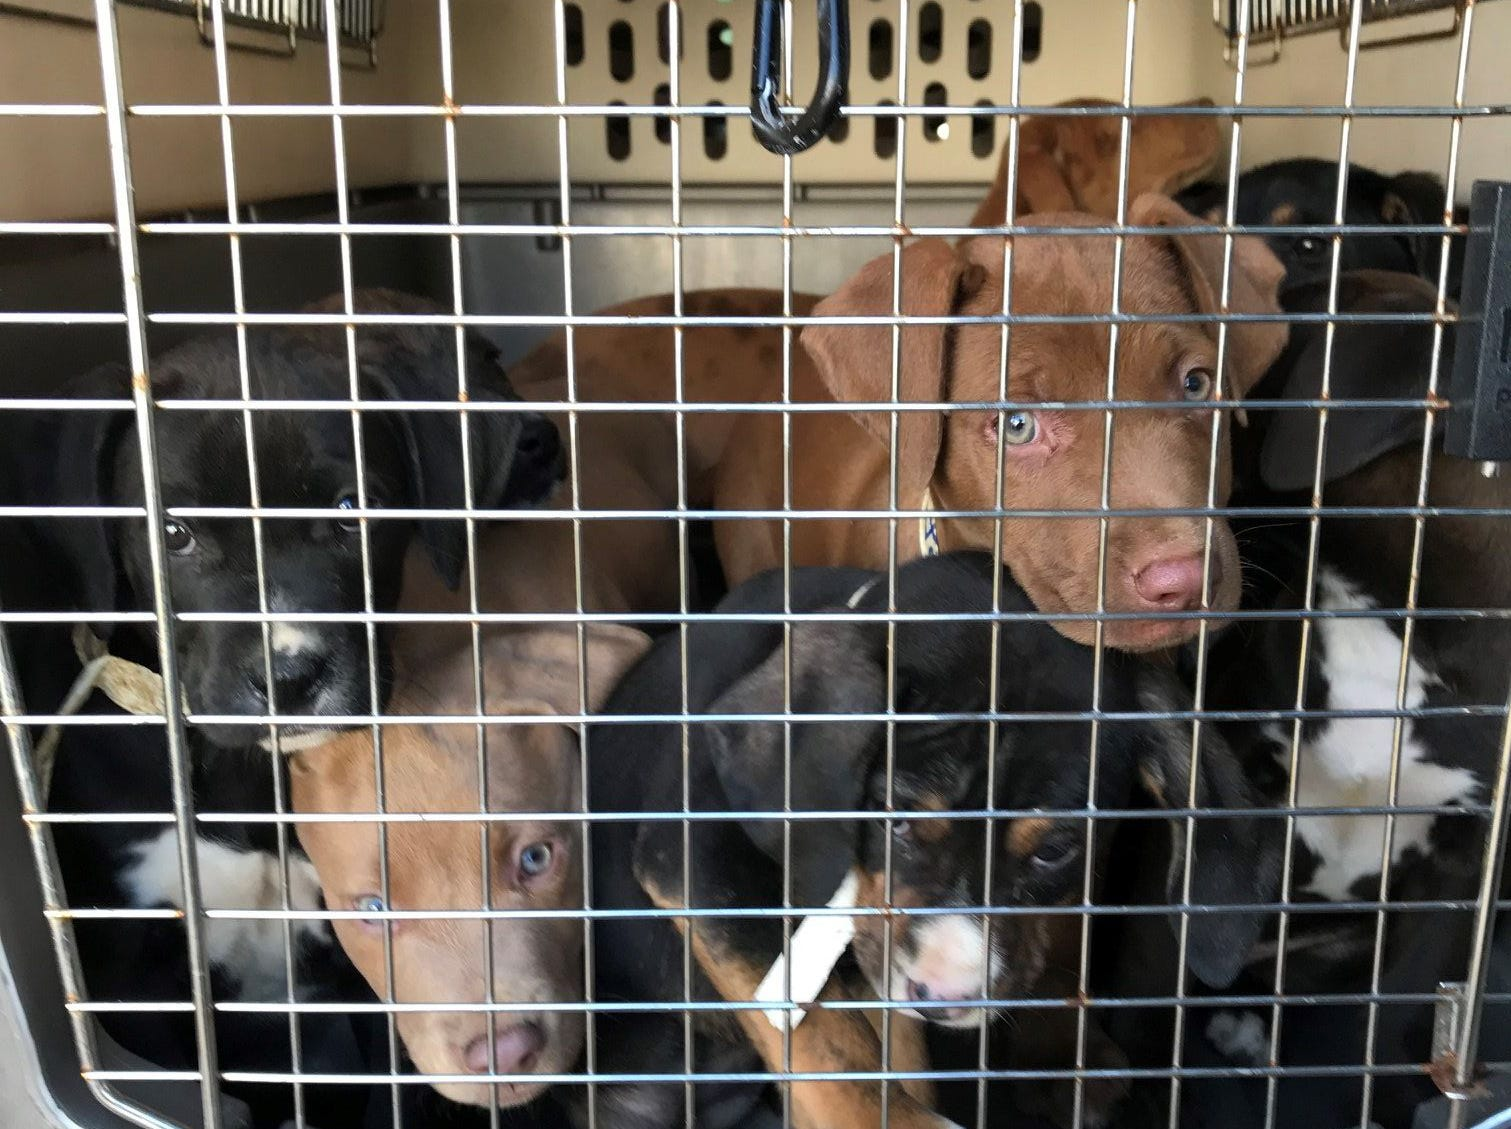 These dogs will be available at the Brandywine Valley SPCA's 2018 Mega Adoption Event at the Delaware State Fairgrounds in Harrington this weekend.